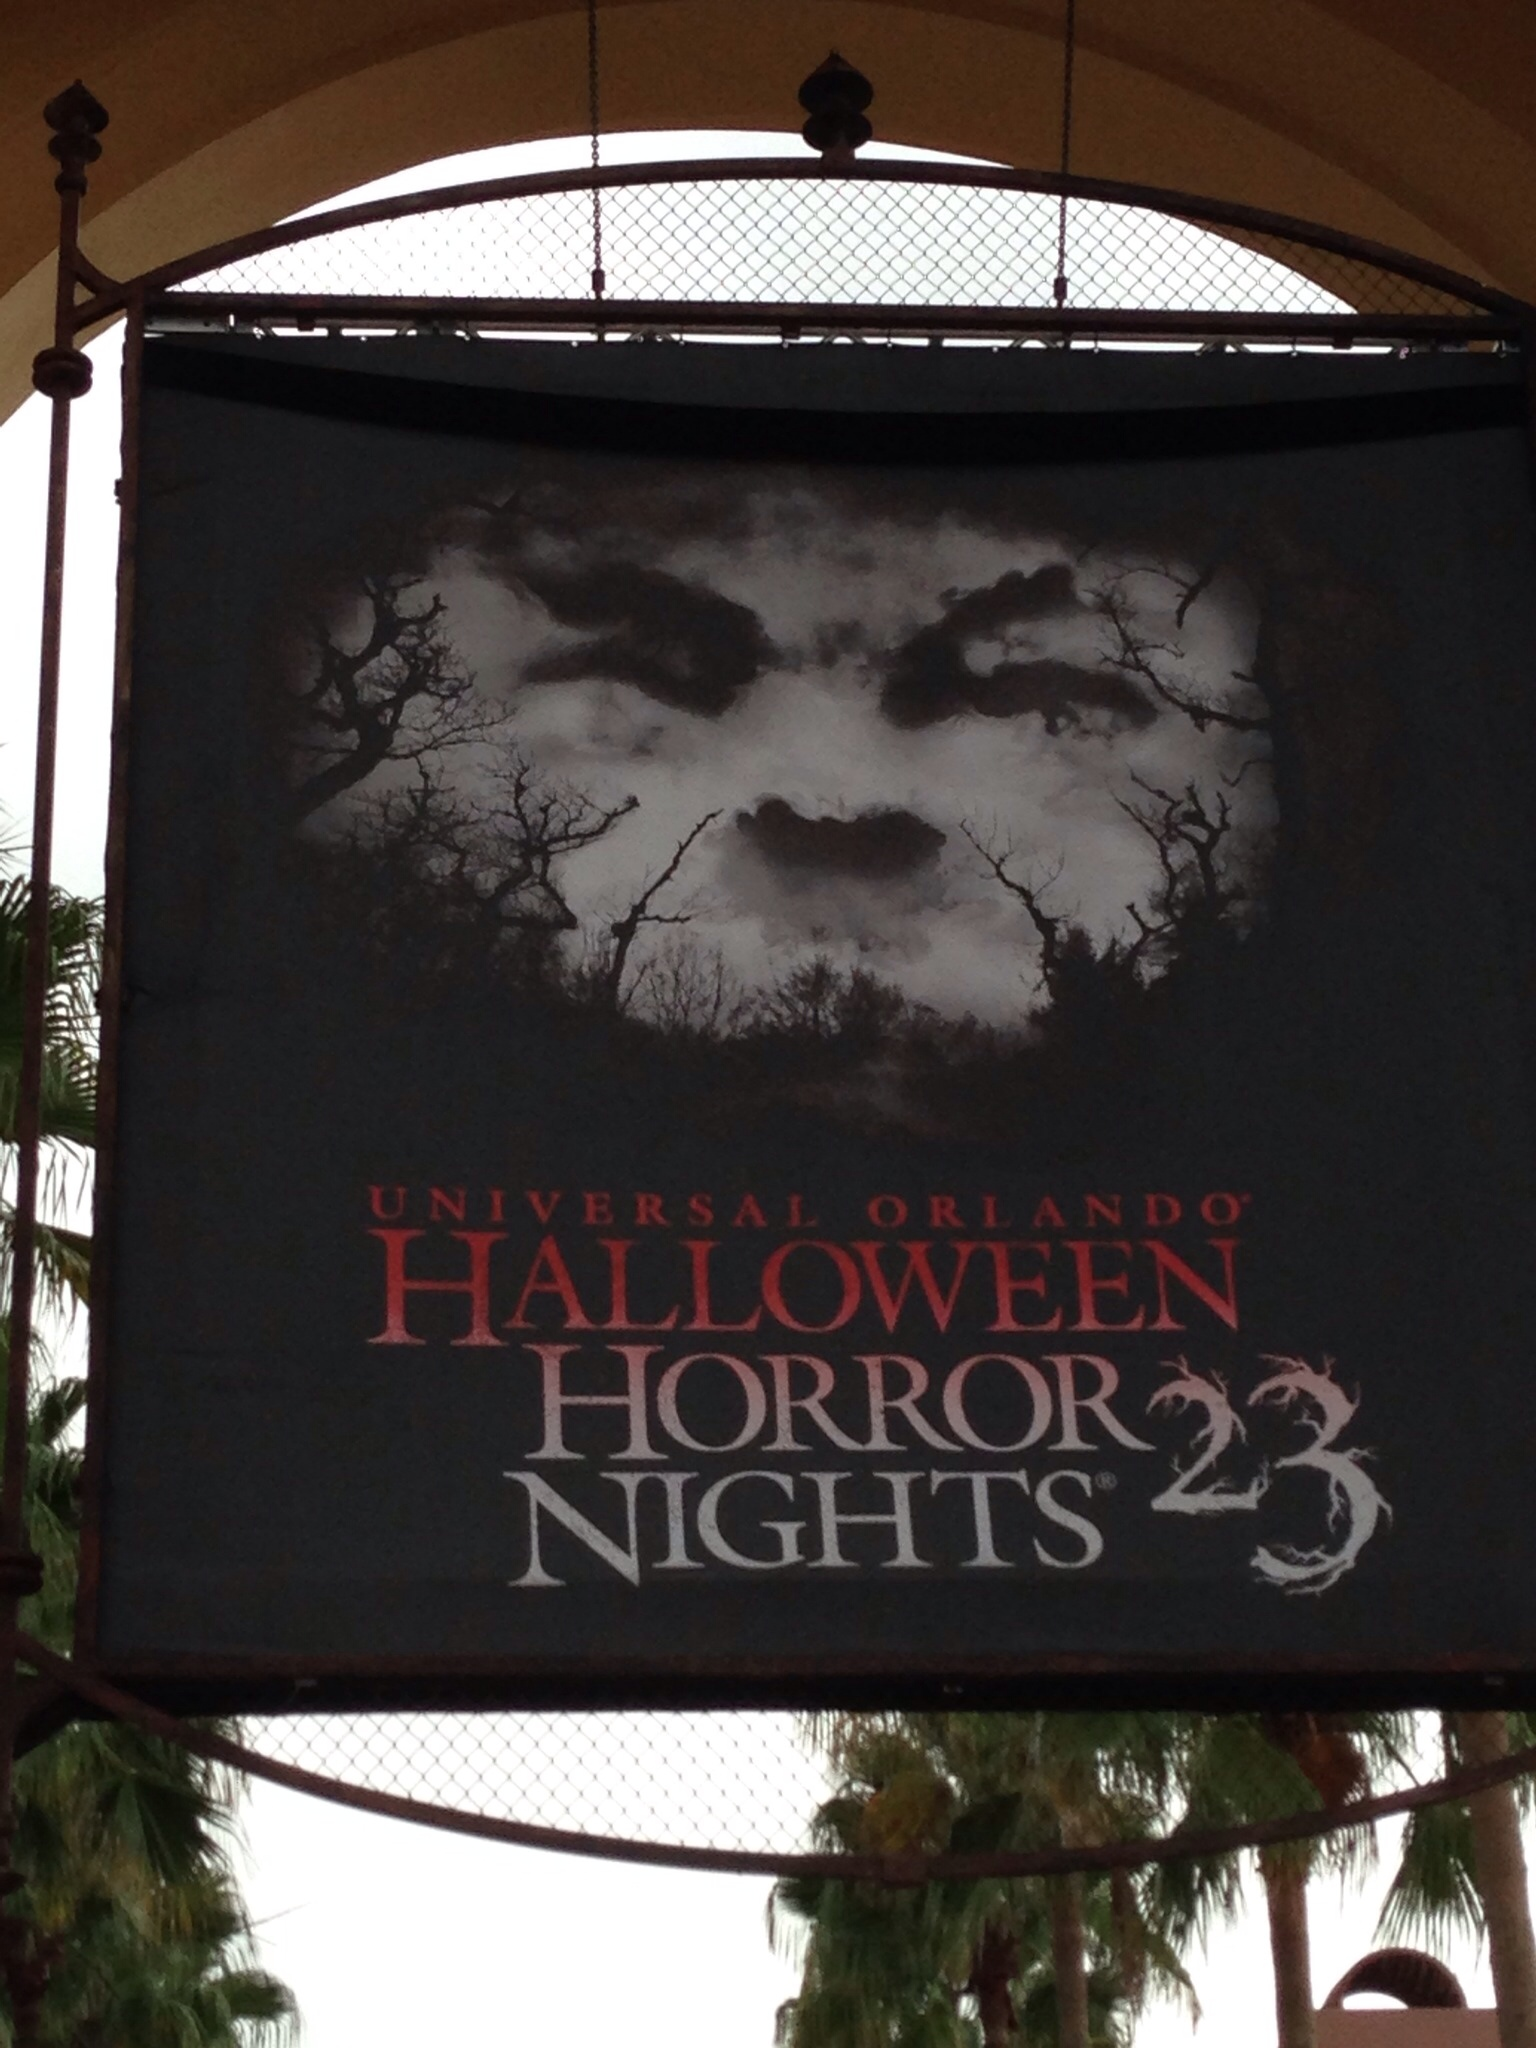 in just a few days on friday september 20 the 23rd annual edition of universal orlandos halloween horror nights will open its zombie filled gates to the